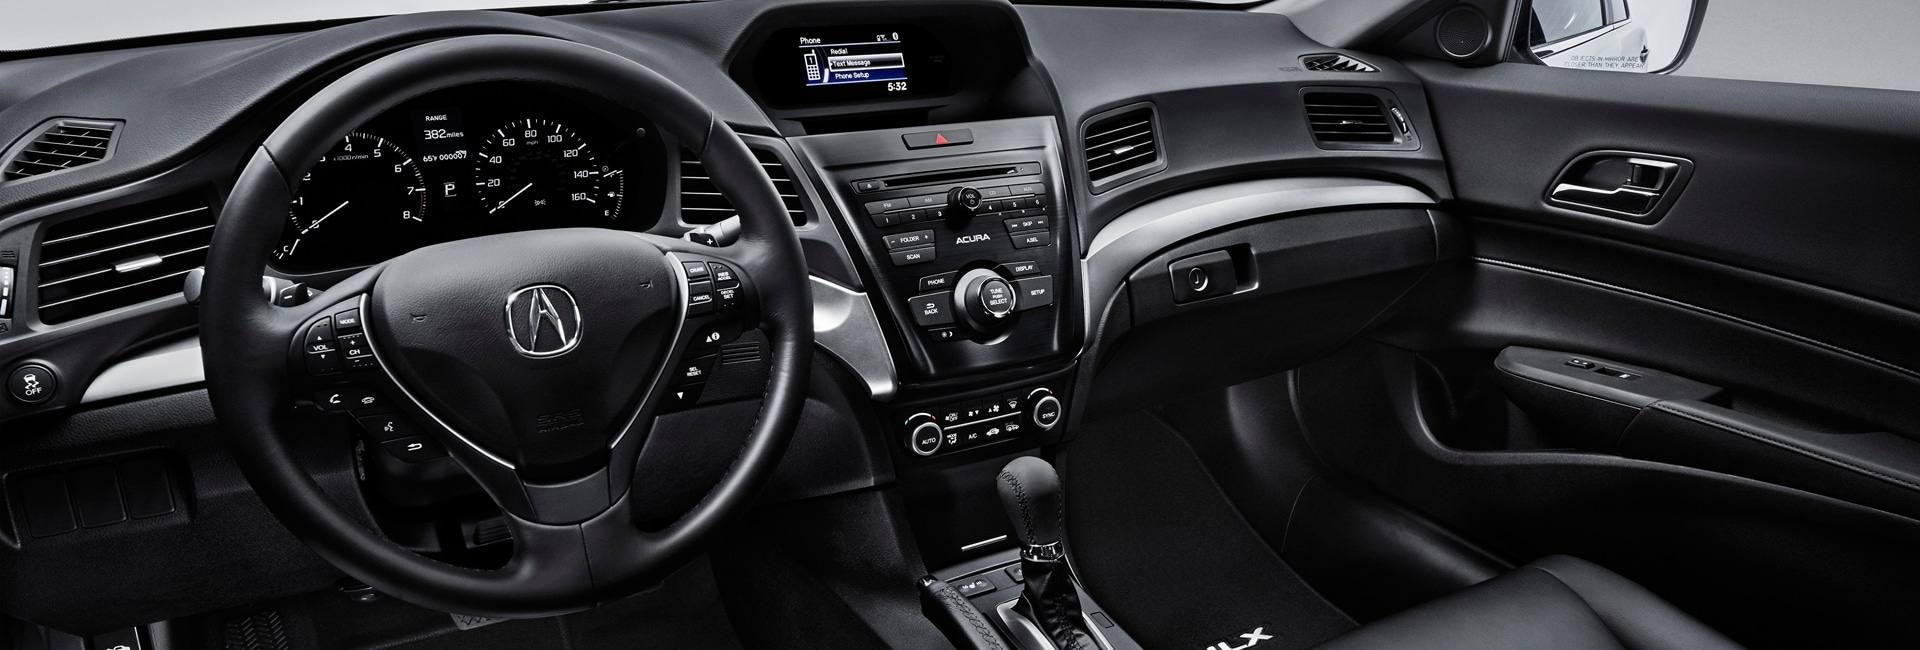 2017 Acura ILX Interior Features